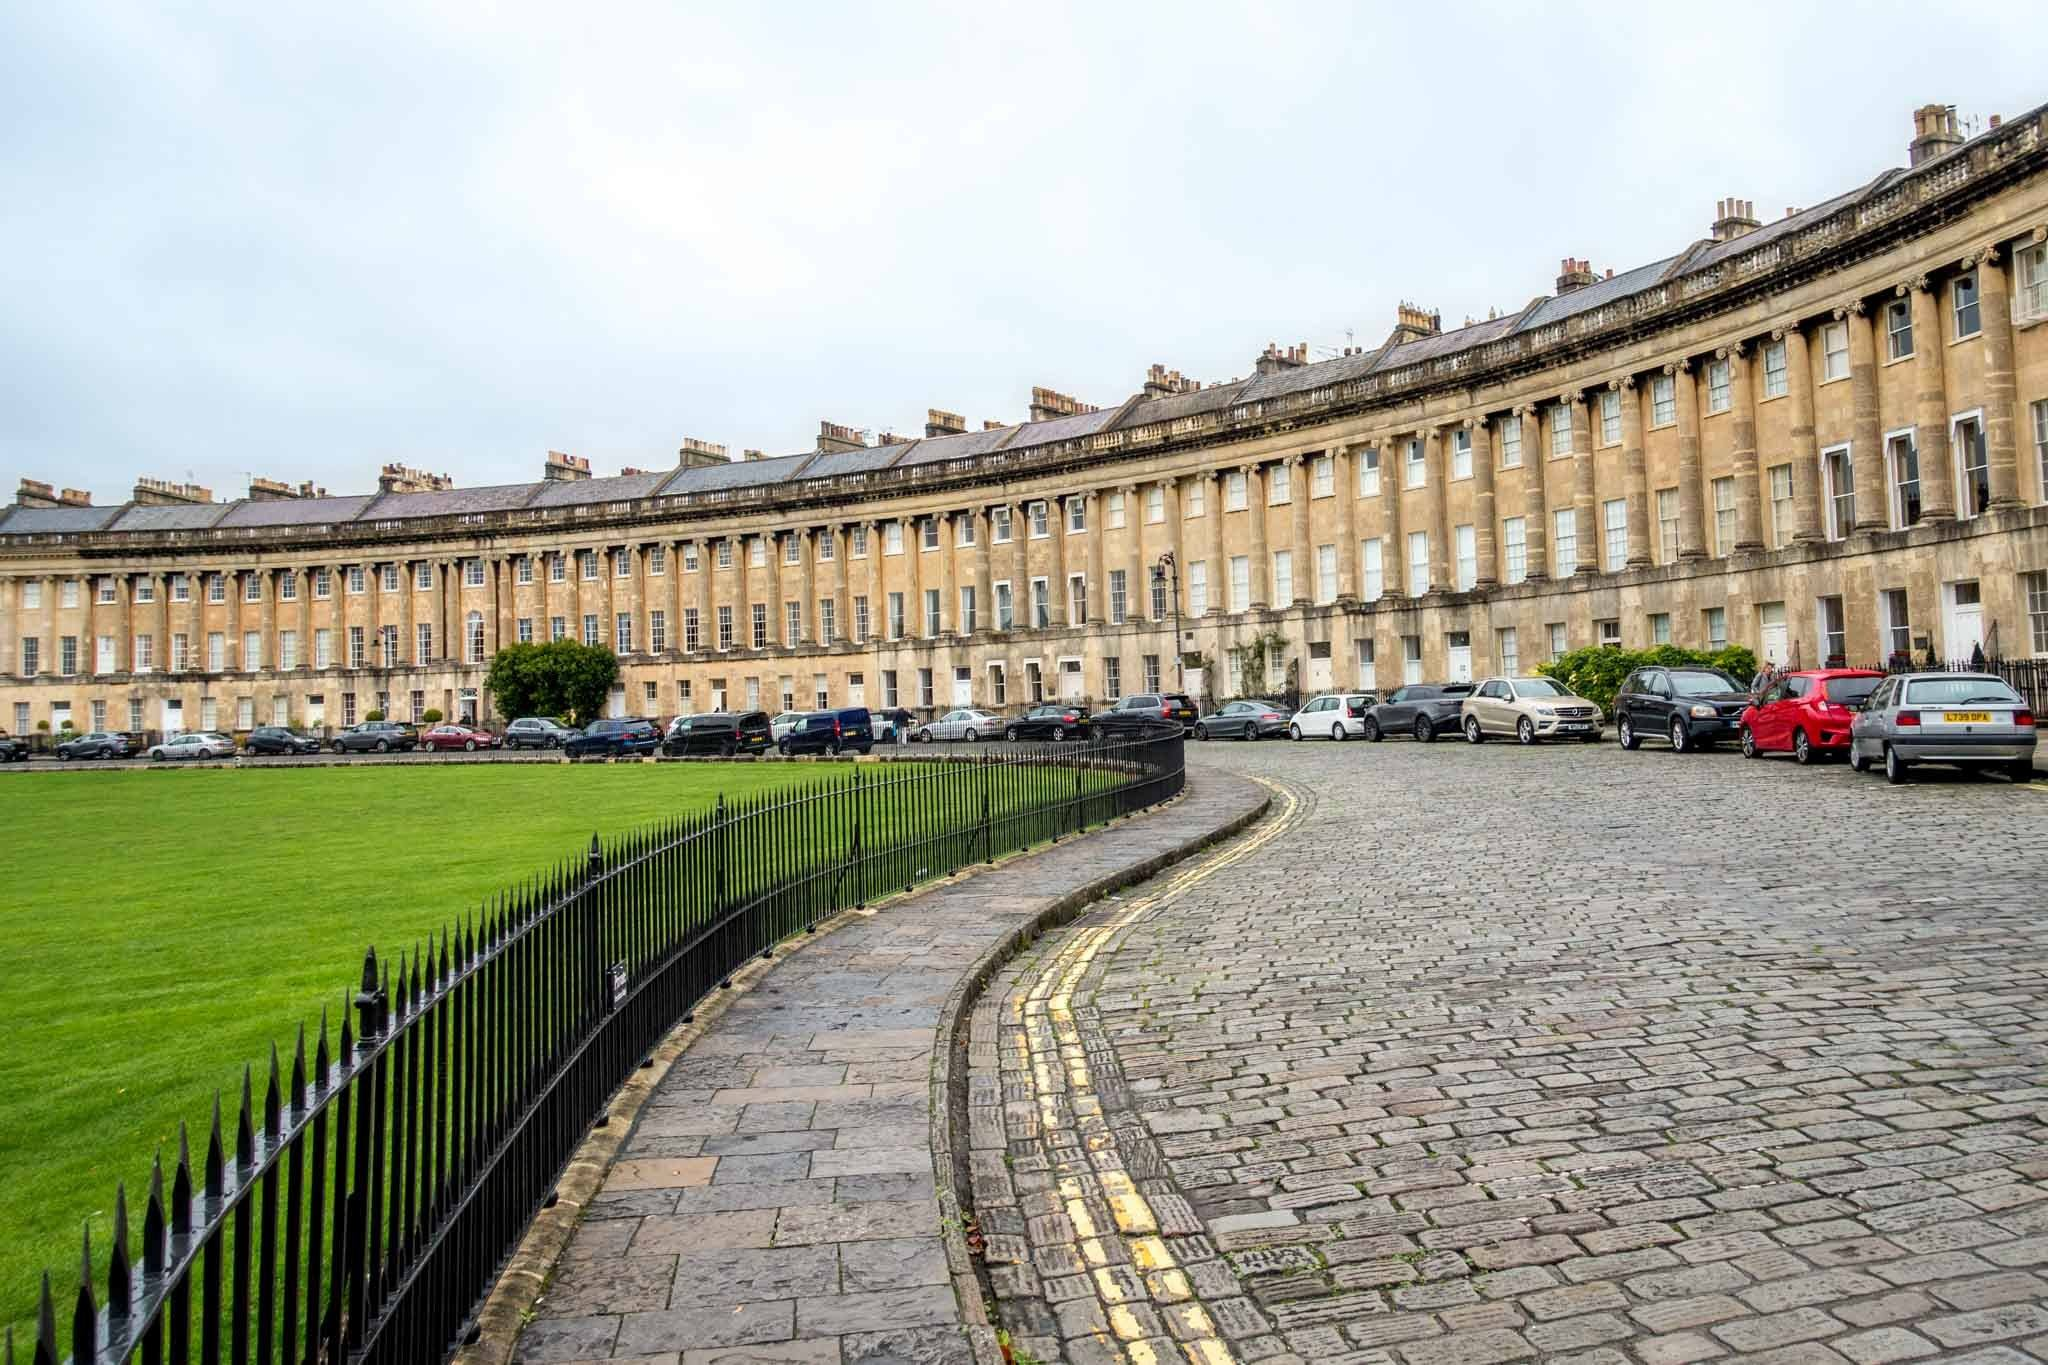 The Royal Crescent is where to see gorgeous Georgian architecture